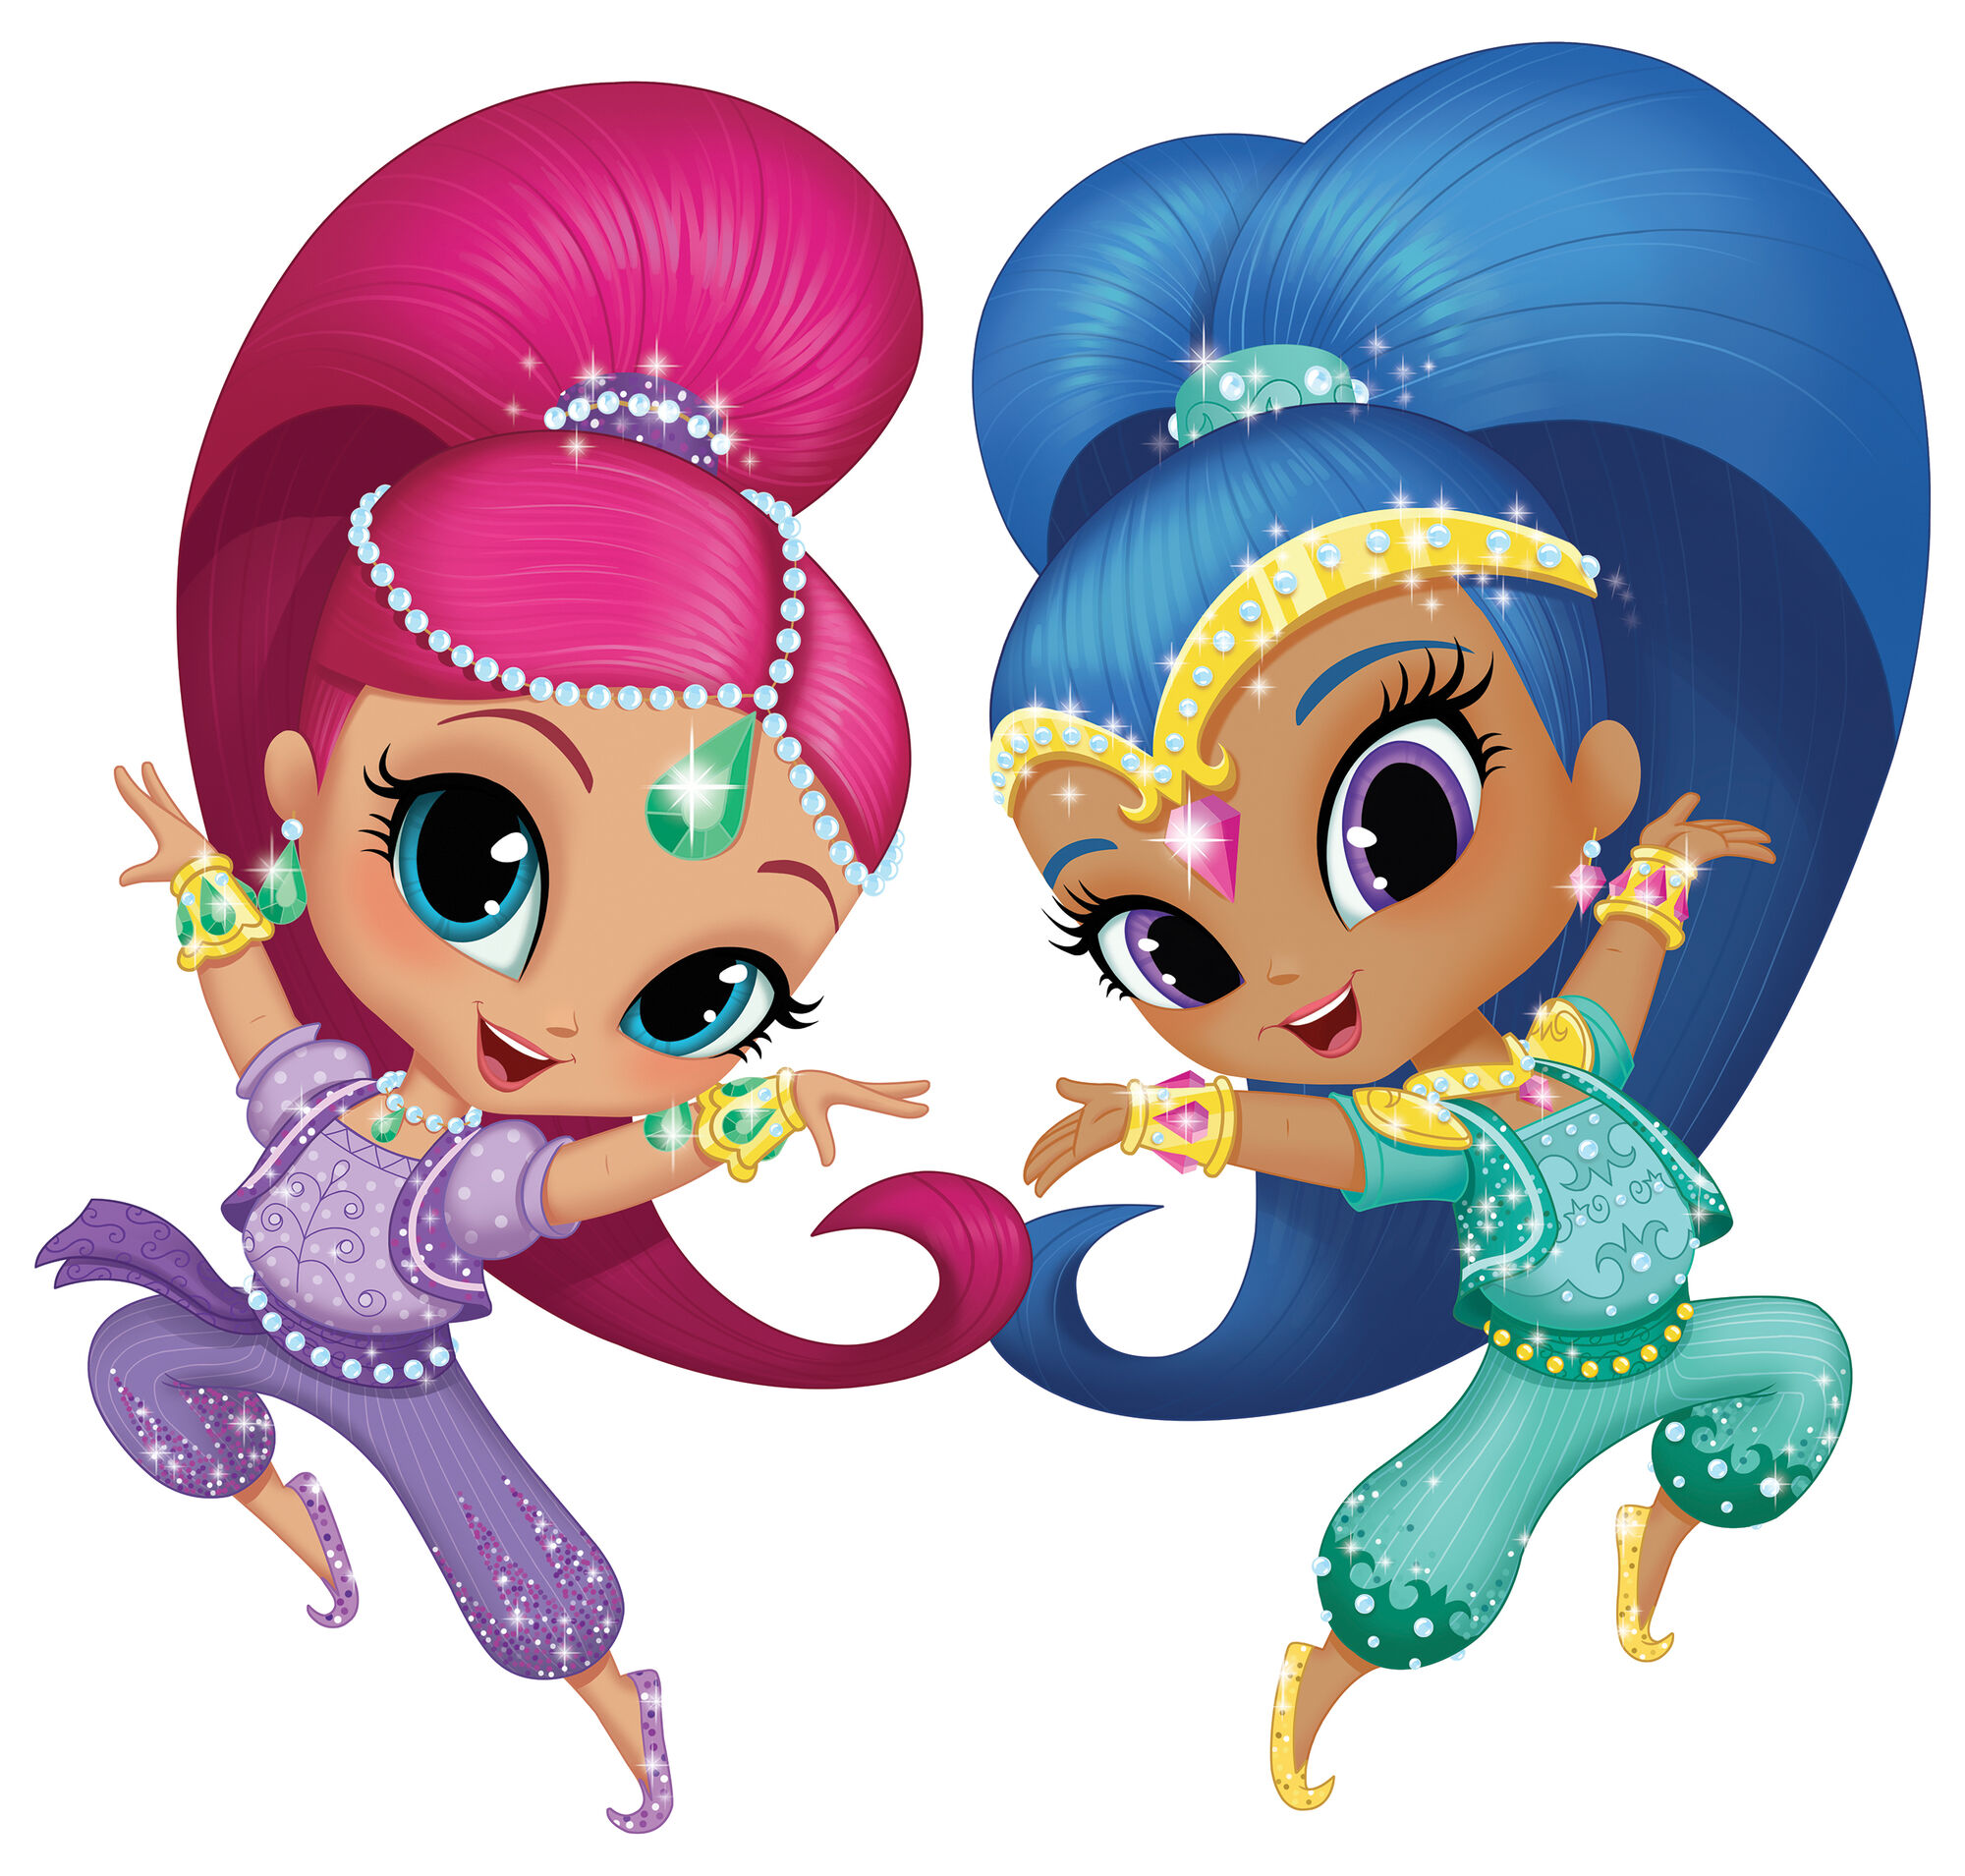 Image shimmer and shine shimmer and shine - Sparkle and shine cartoon ...